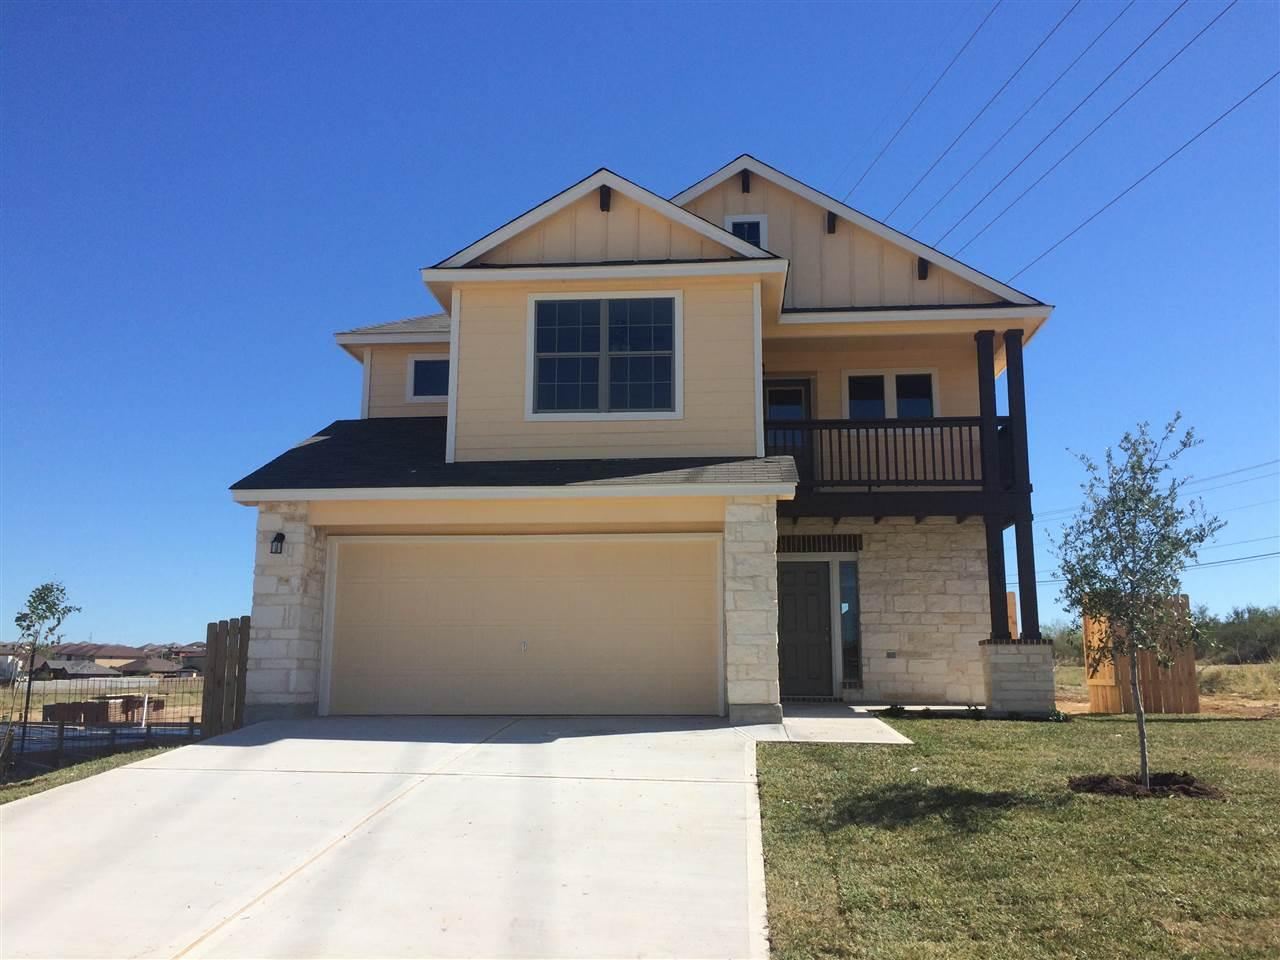 Listing 3301 mandela ct laredo tx mls 20153267 Home builders in laredo tx